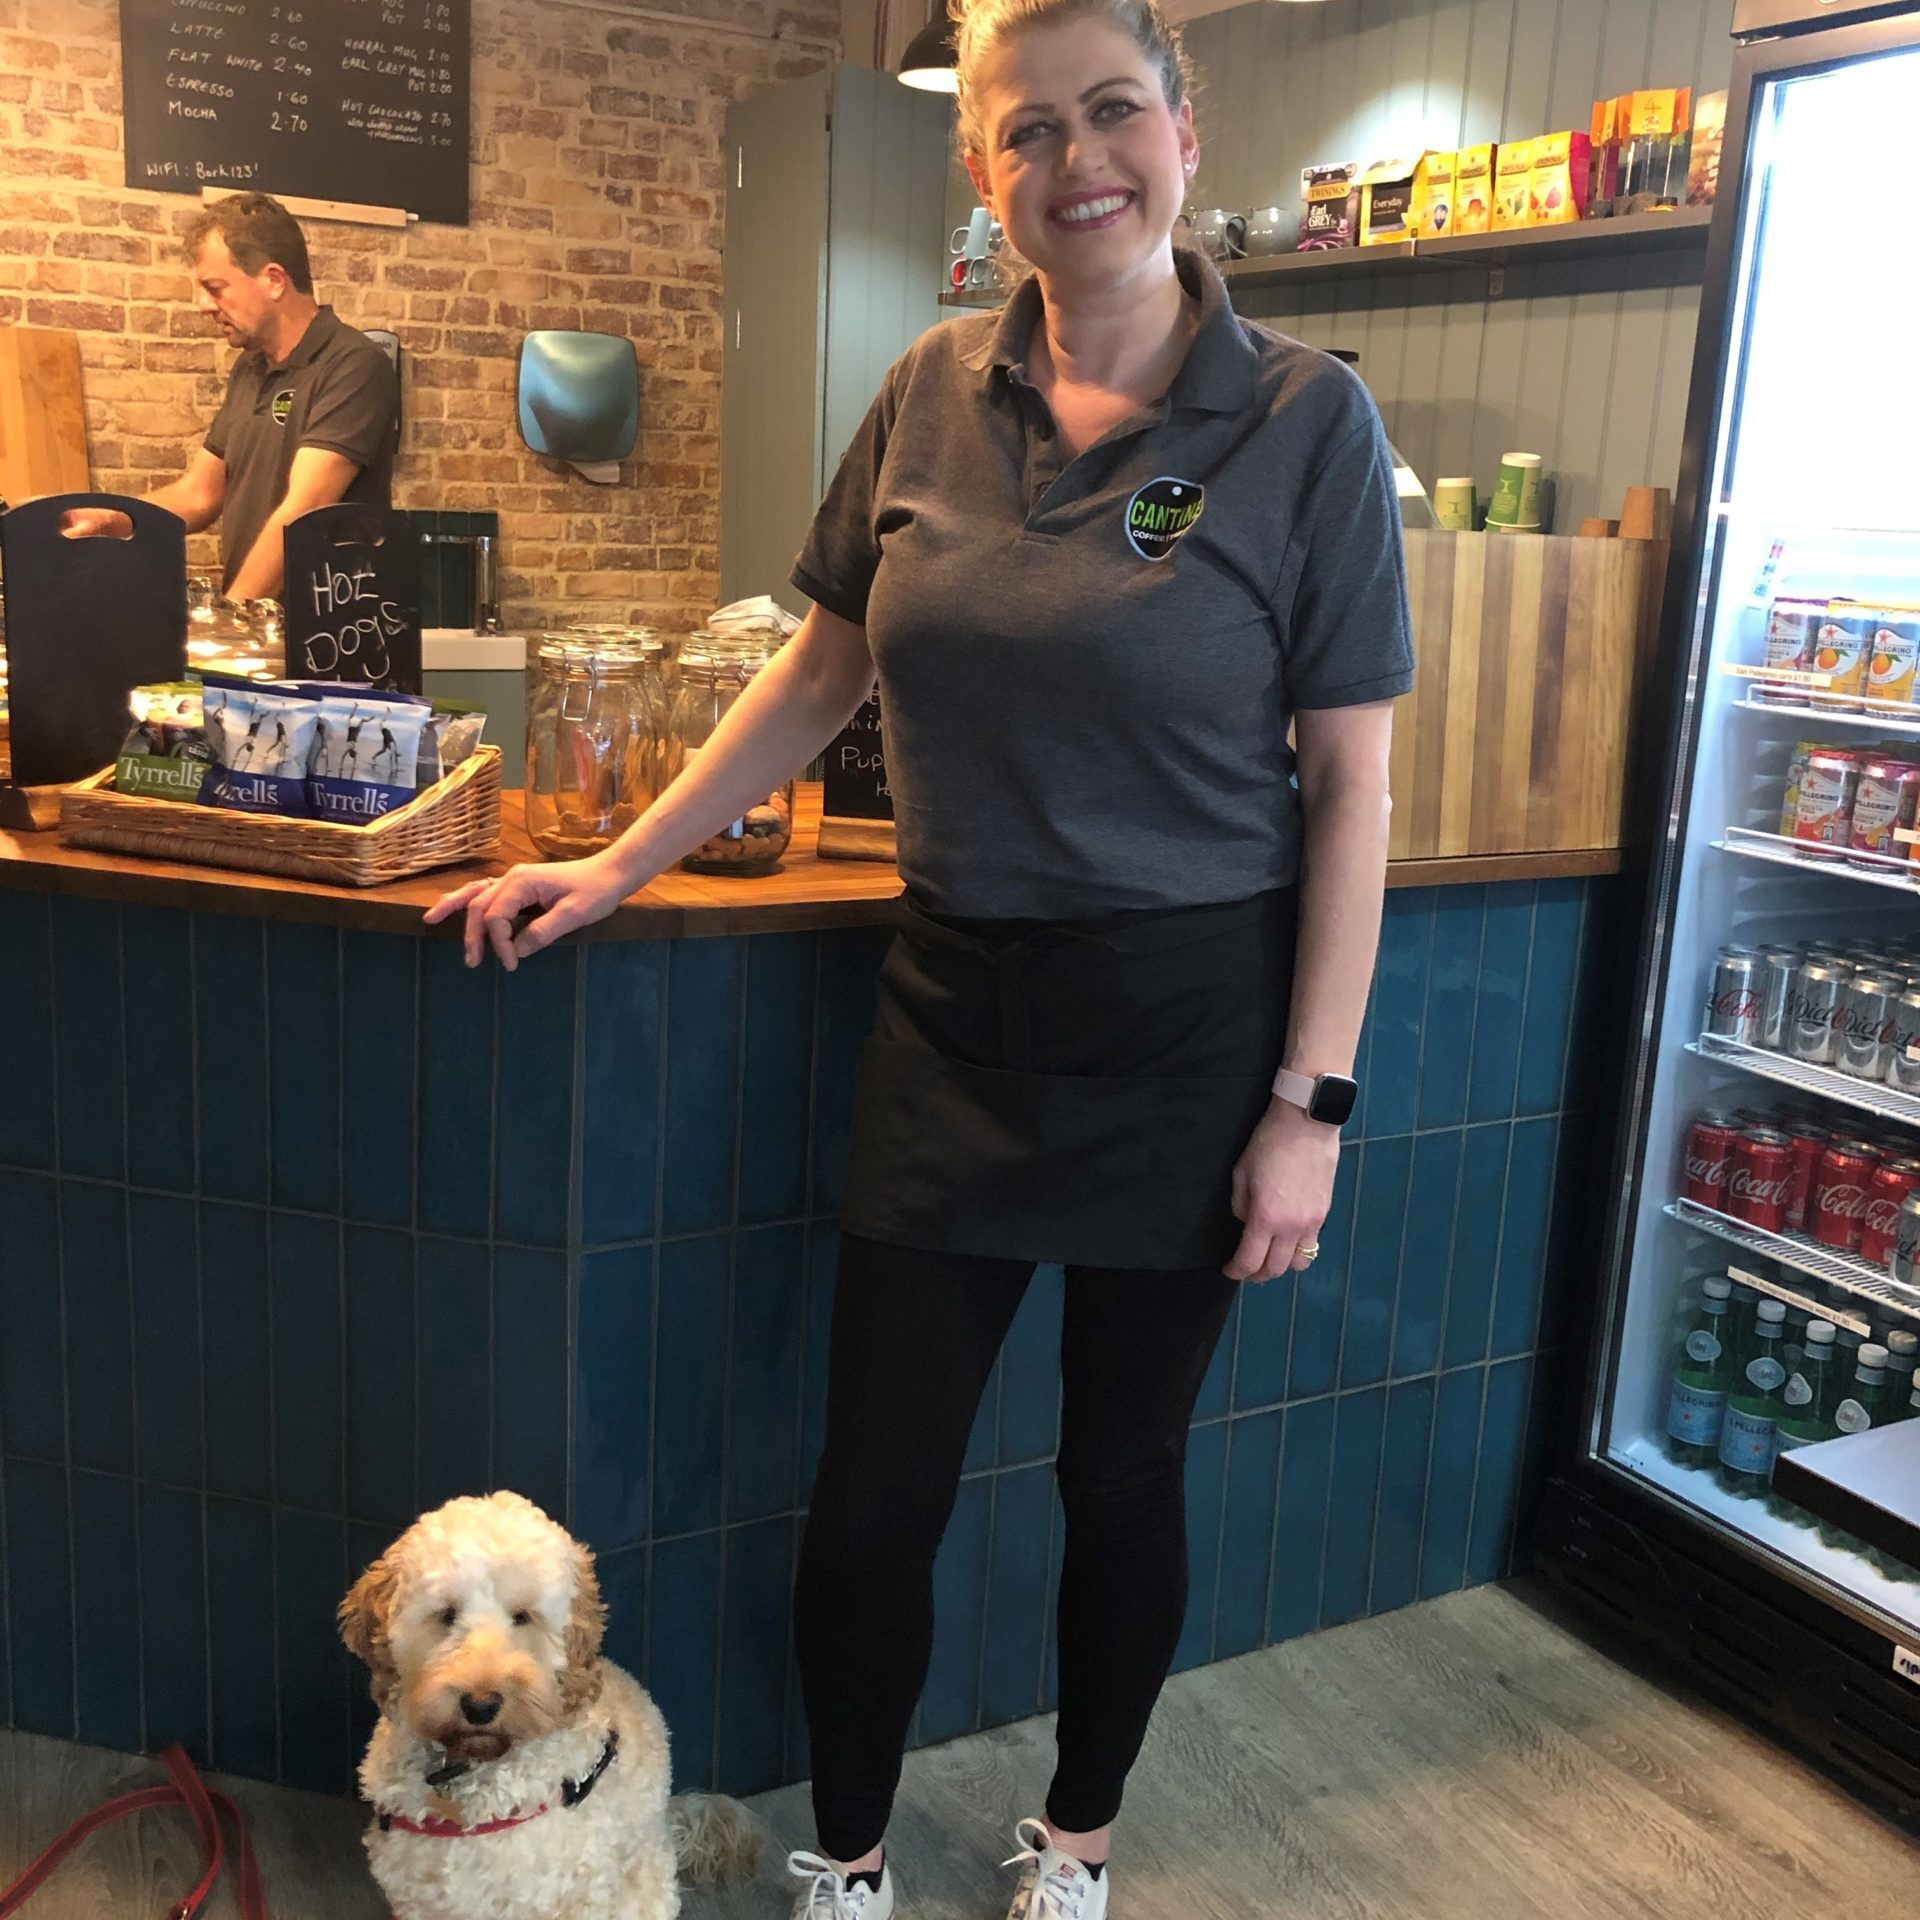 Alison and her dog in Cantine Cafe